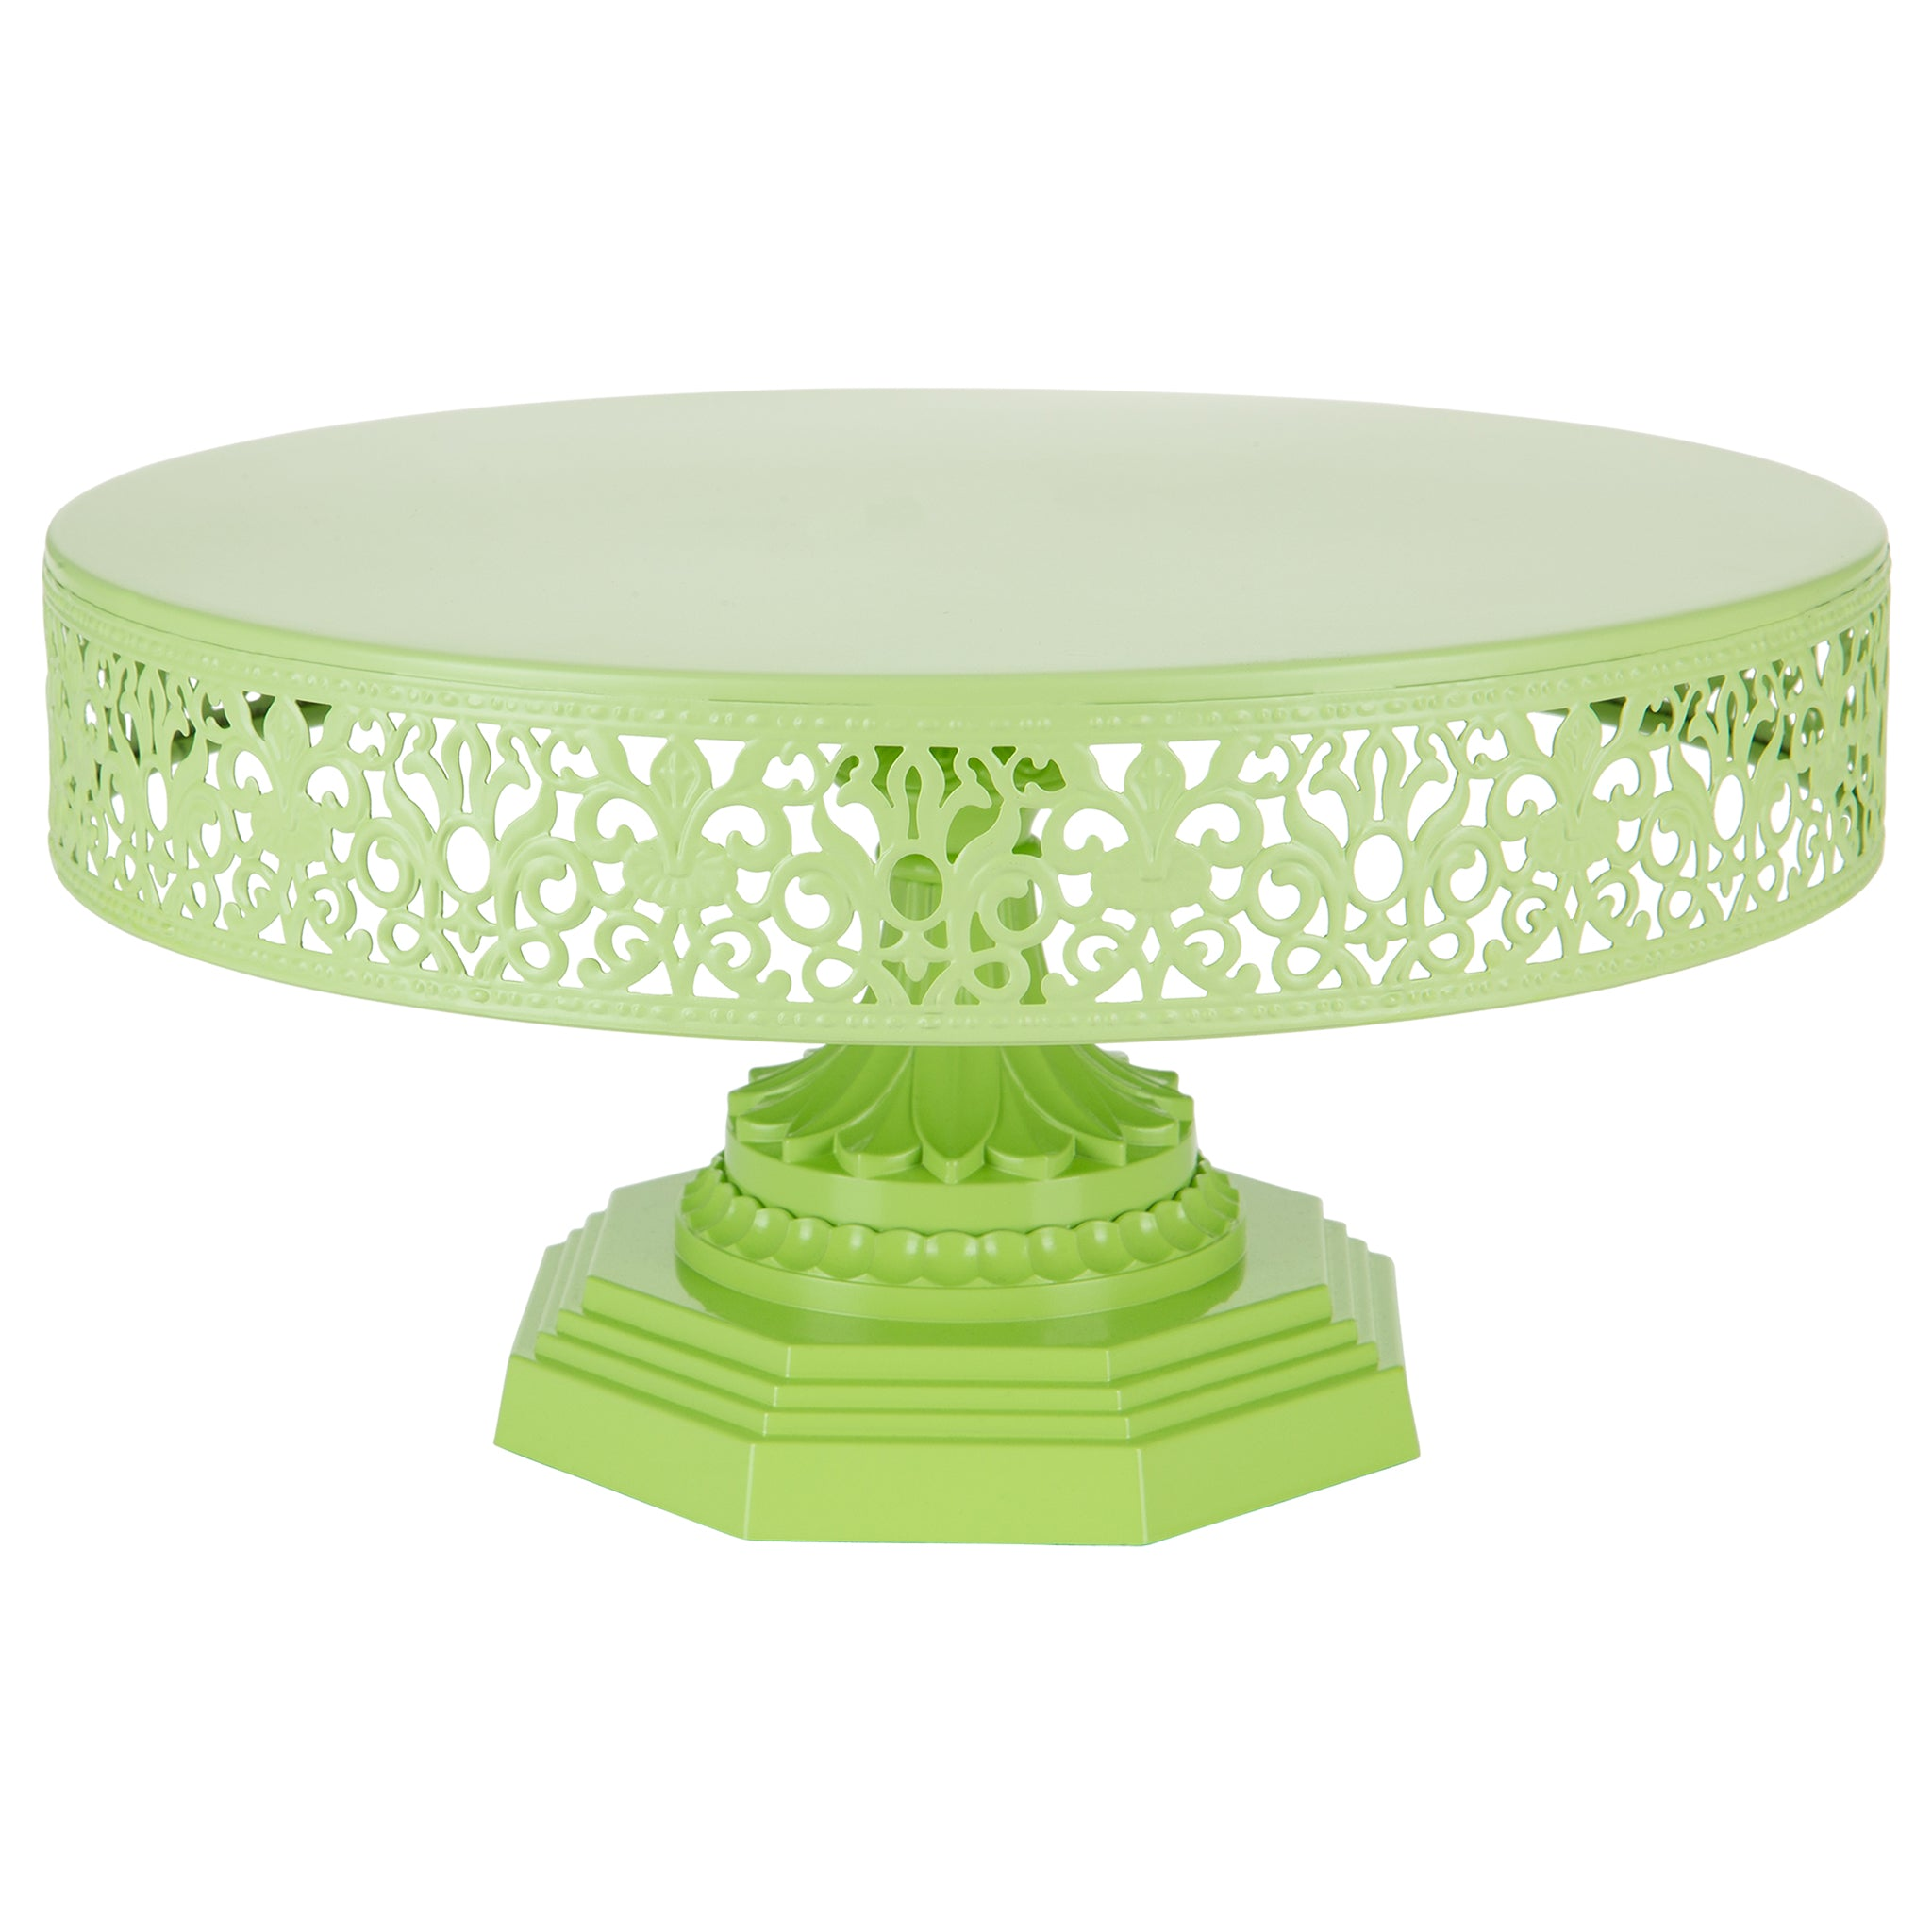 Amalfi Decor 12 Inch Round Metal Wedding Cake Stand (Lime Green) | Stainless Steel Frame